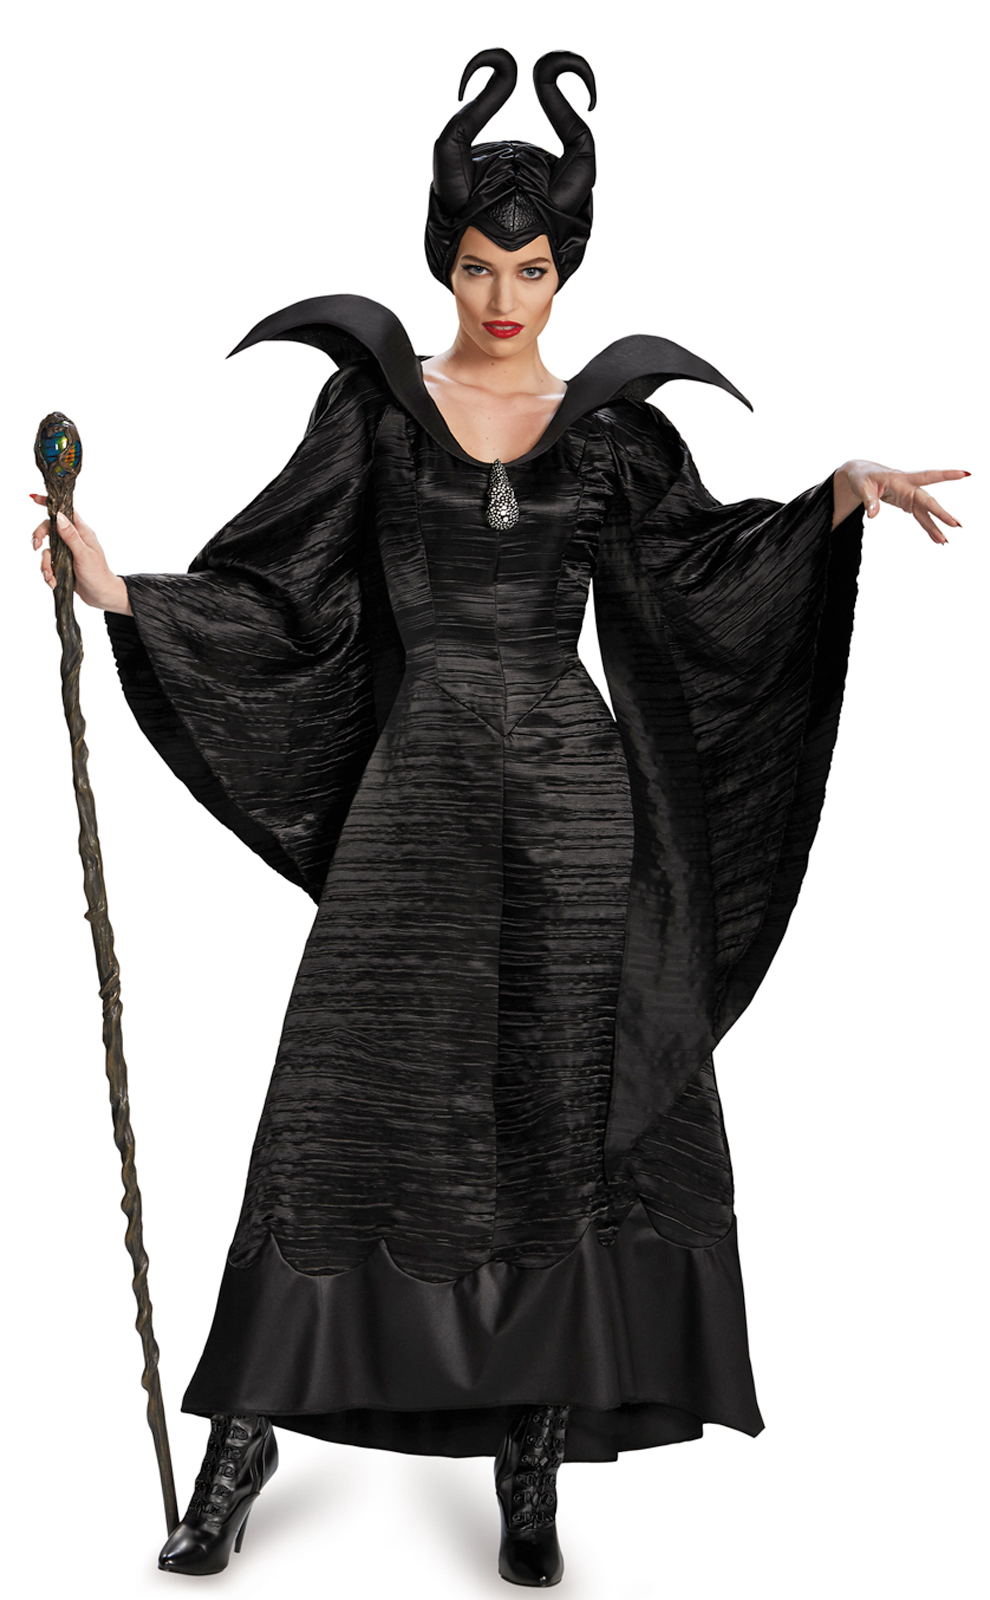 Black dress costume ideas - Maleficent Deluxe Christening Black Gown Adult Costume Buycostumes Com